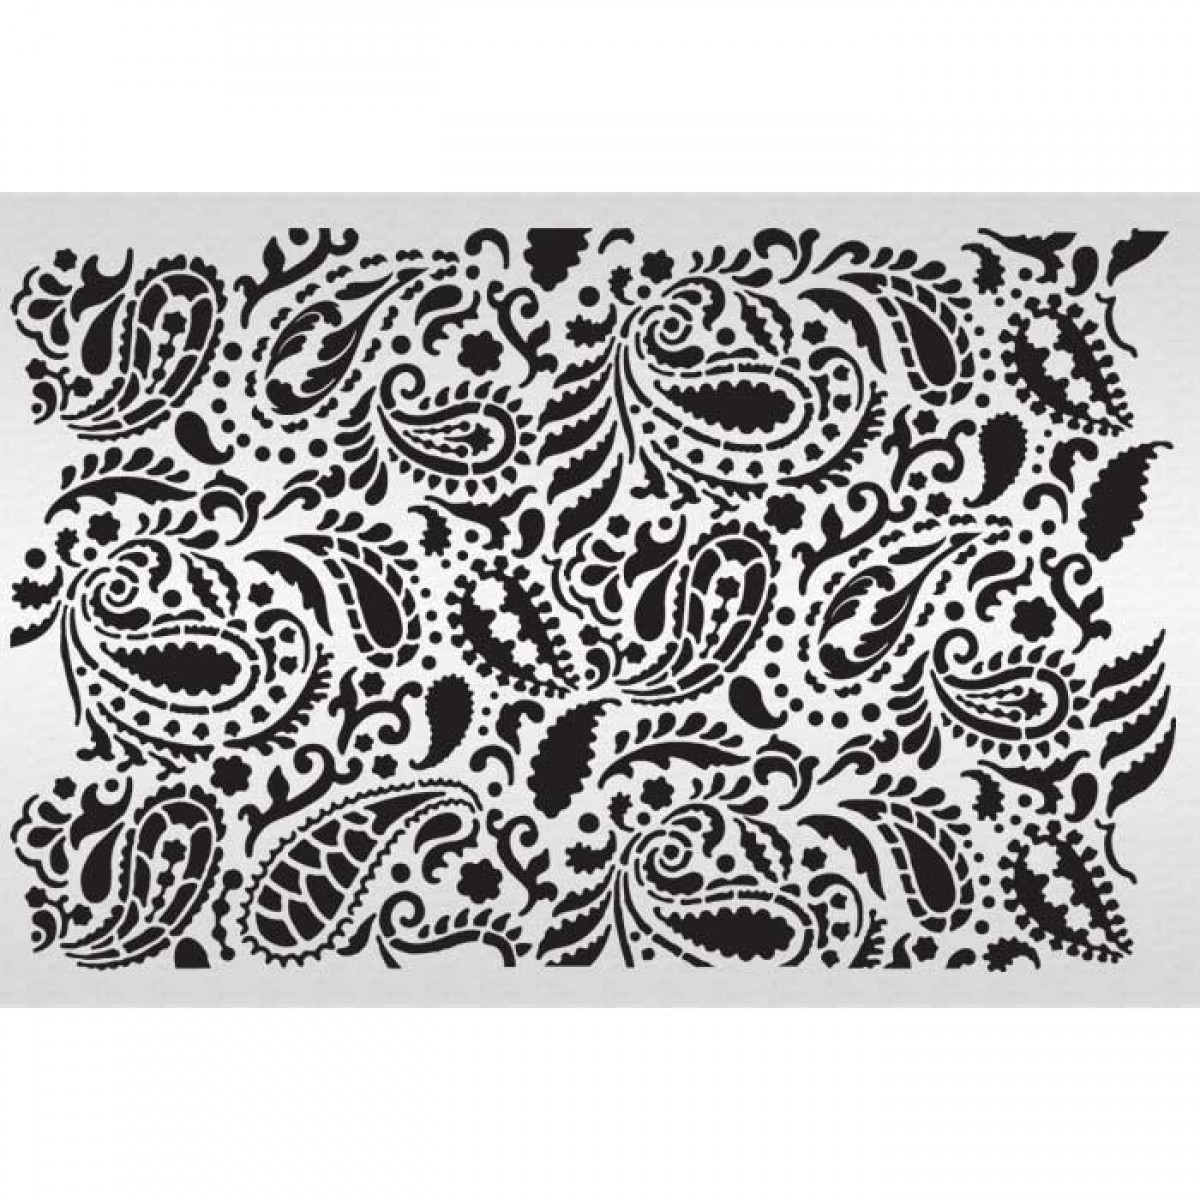 18 Stencils Of Paisley Design Images - Paisley Pattern ...